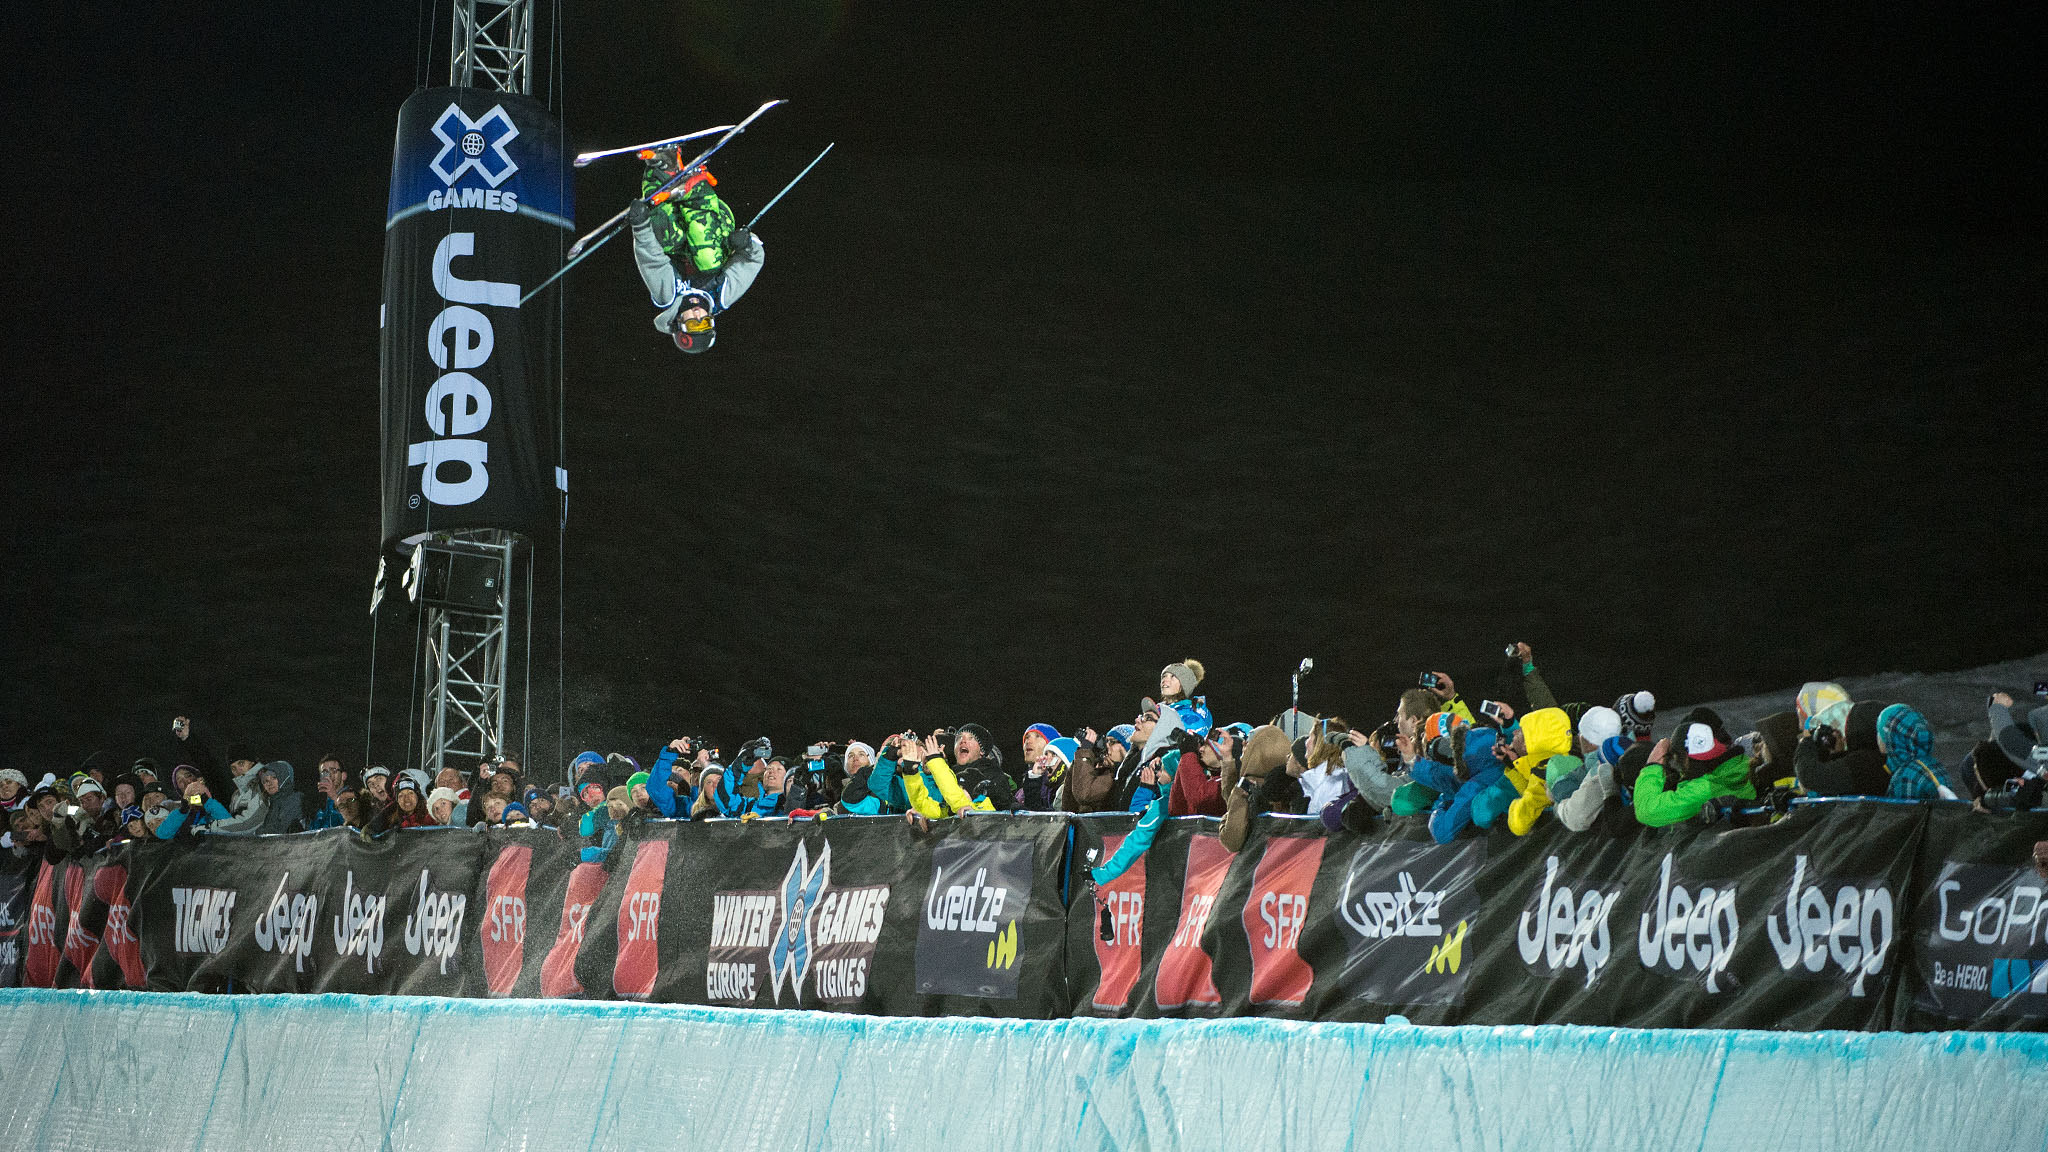 Torin Yater-Wallace won his second consecutive X Games Tignes gold medal in the Men's Ski SuperPipe at 17 years old.